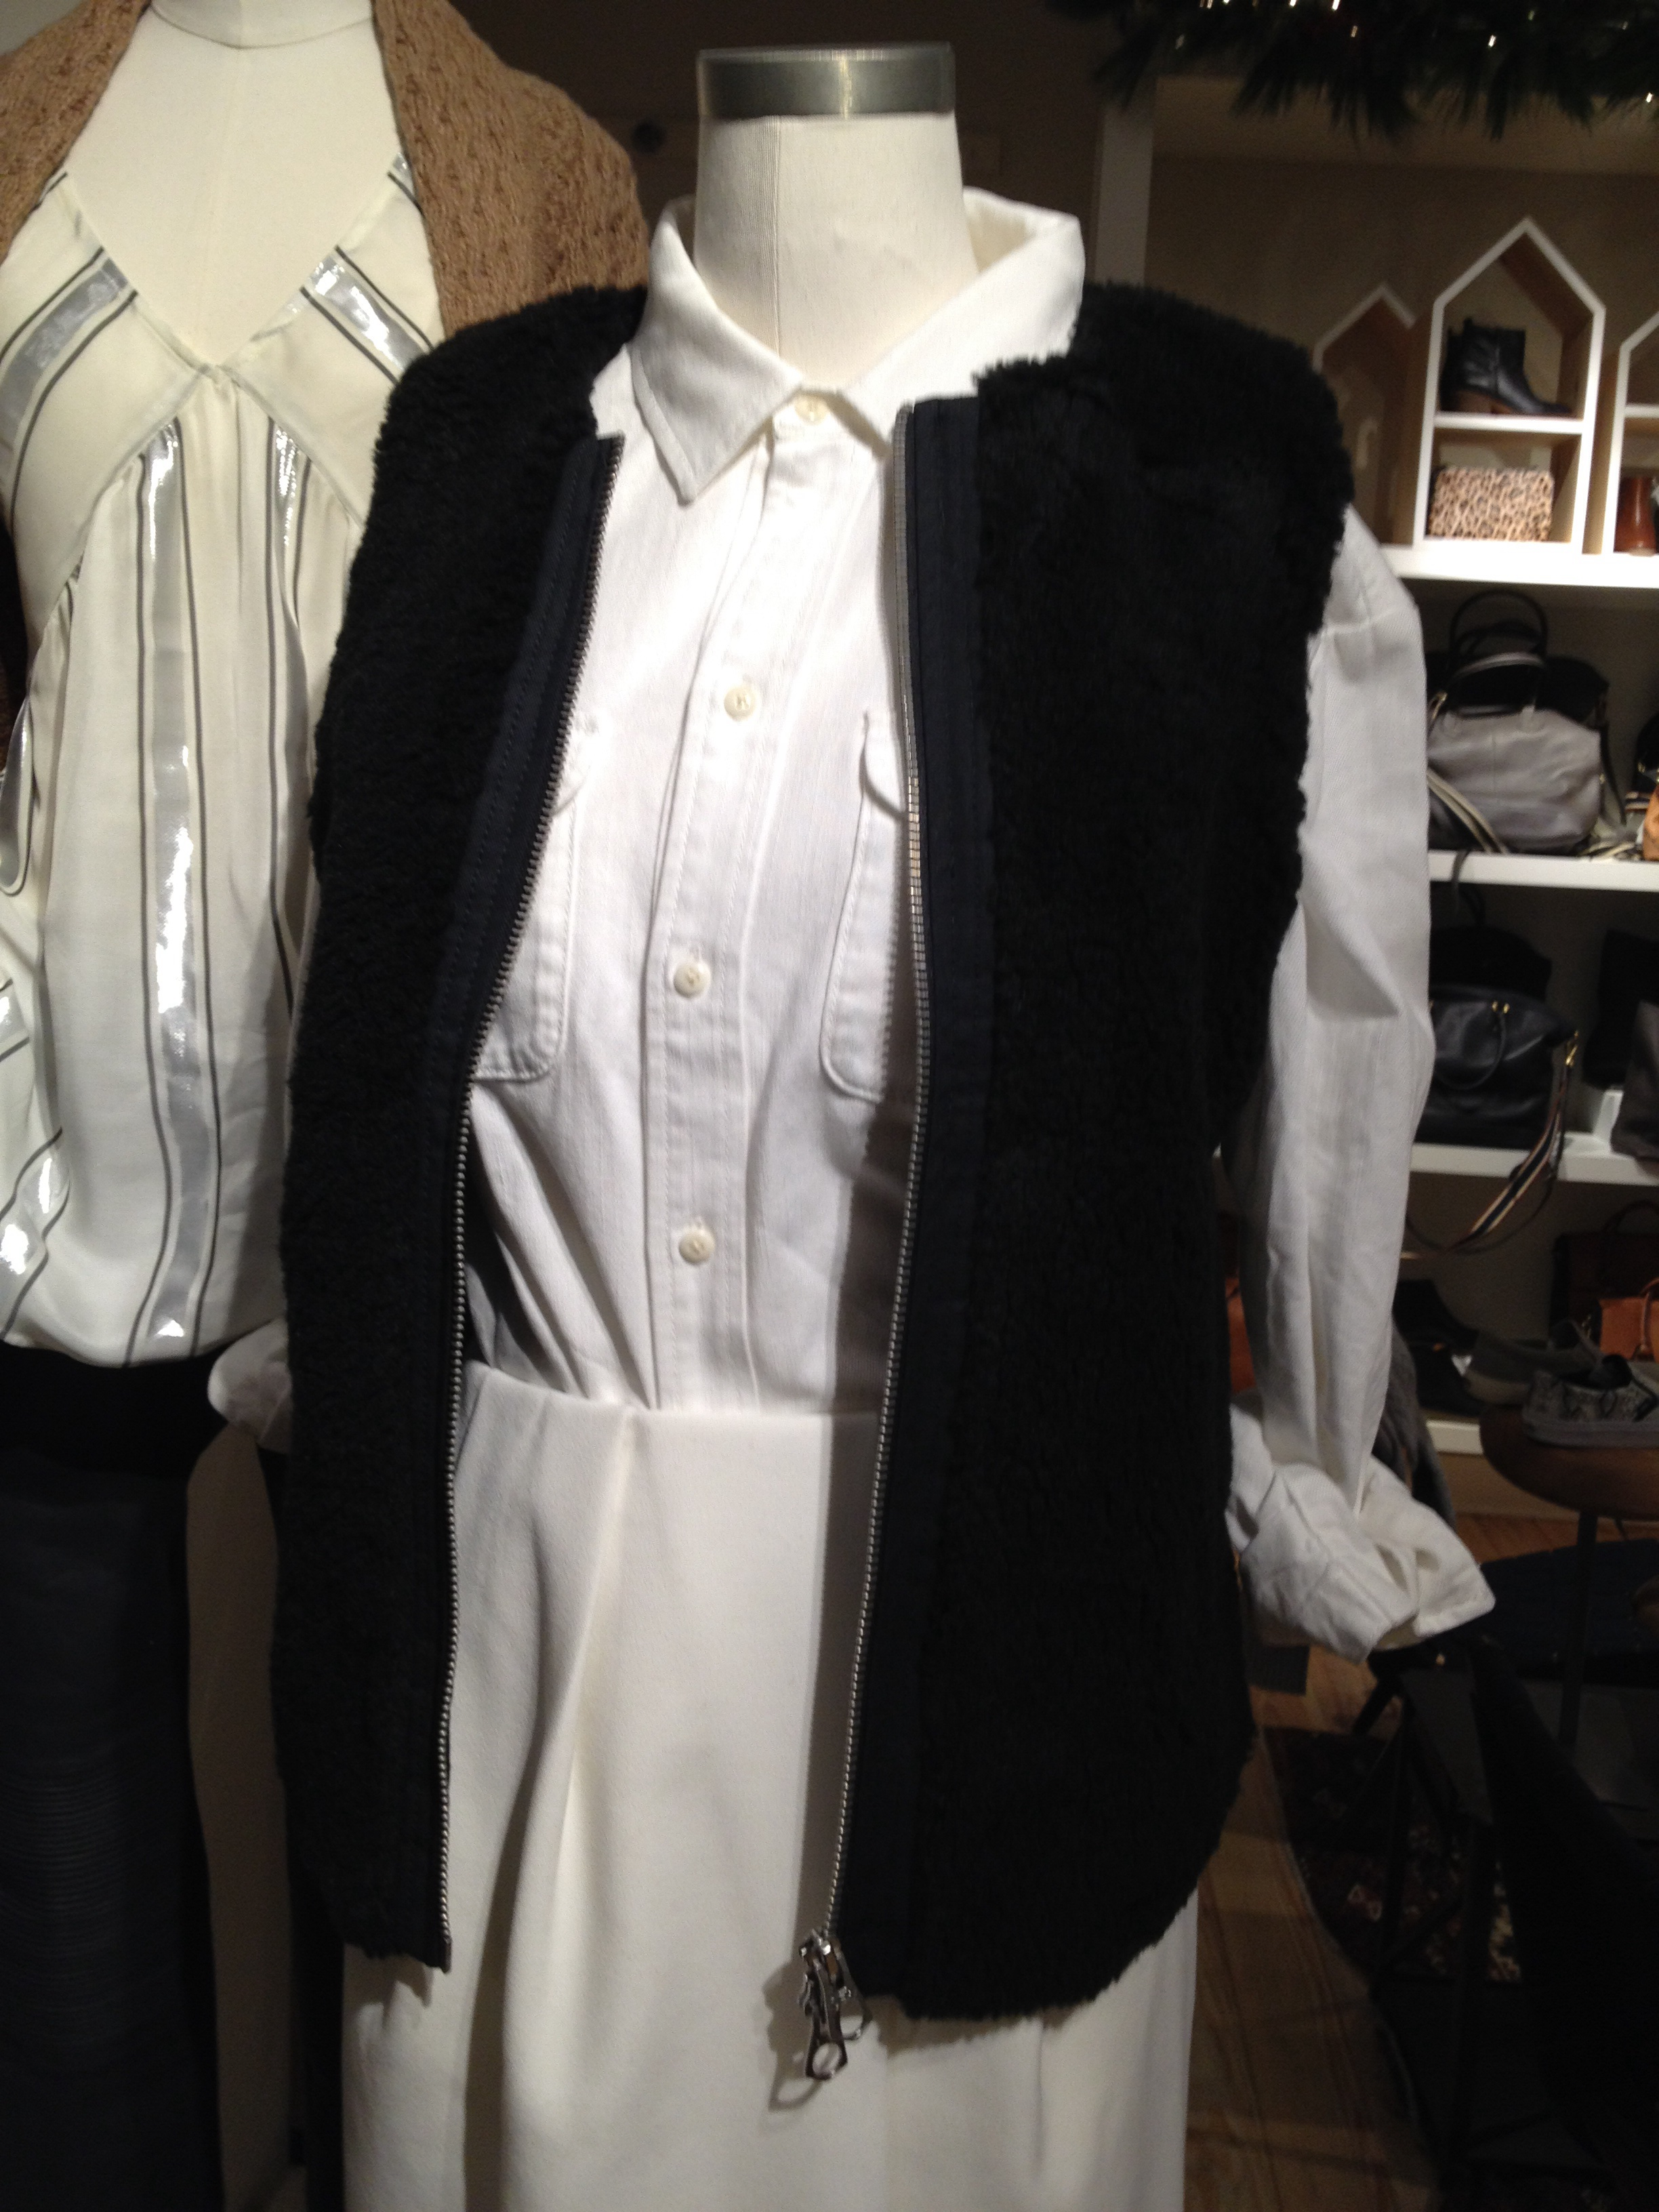 89e408152cc30 I saw this vest on the store mannequin